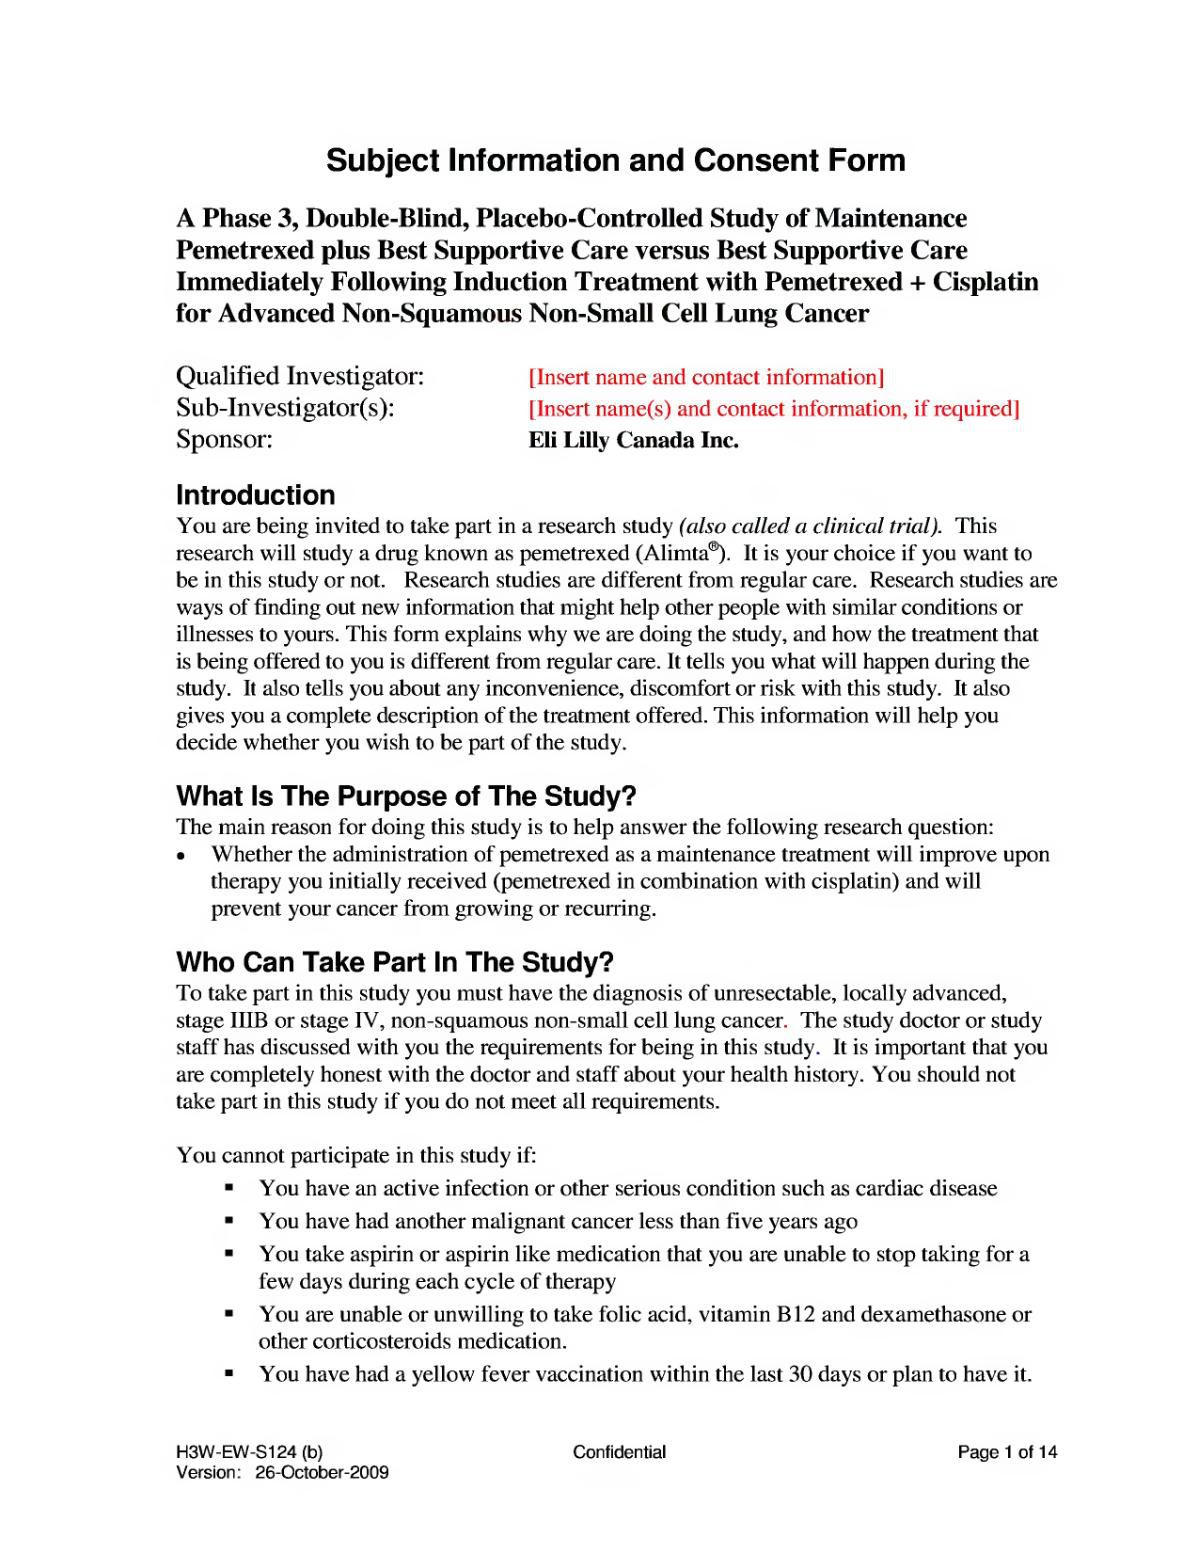 007 Awful Medical Treatment Authorization And Consent Form Template Idea Full